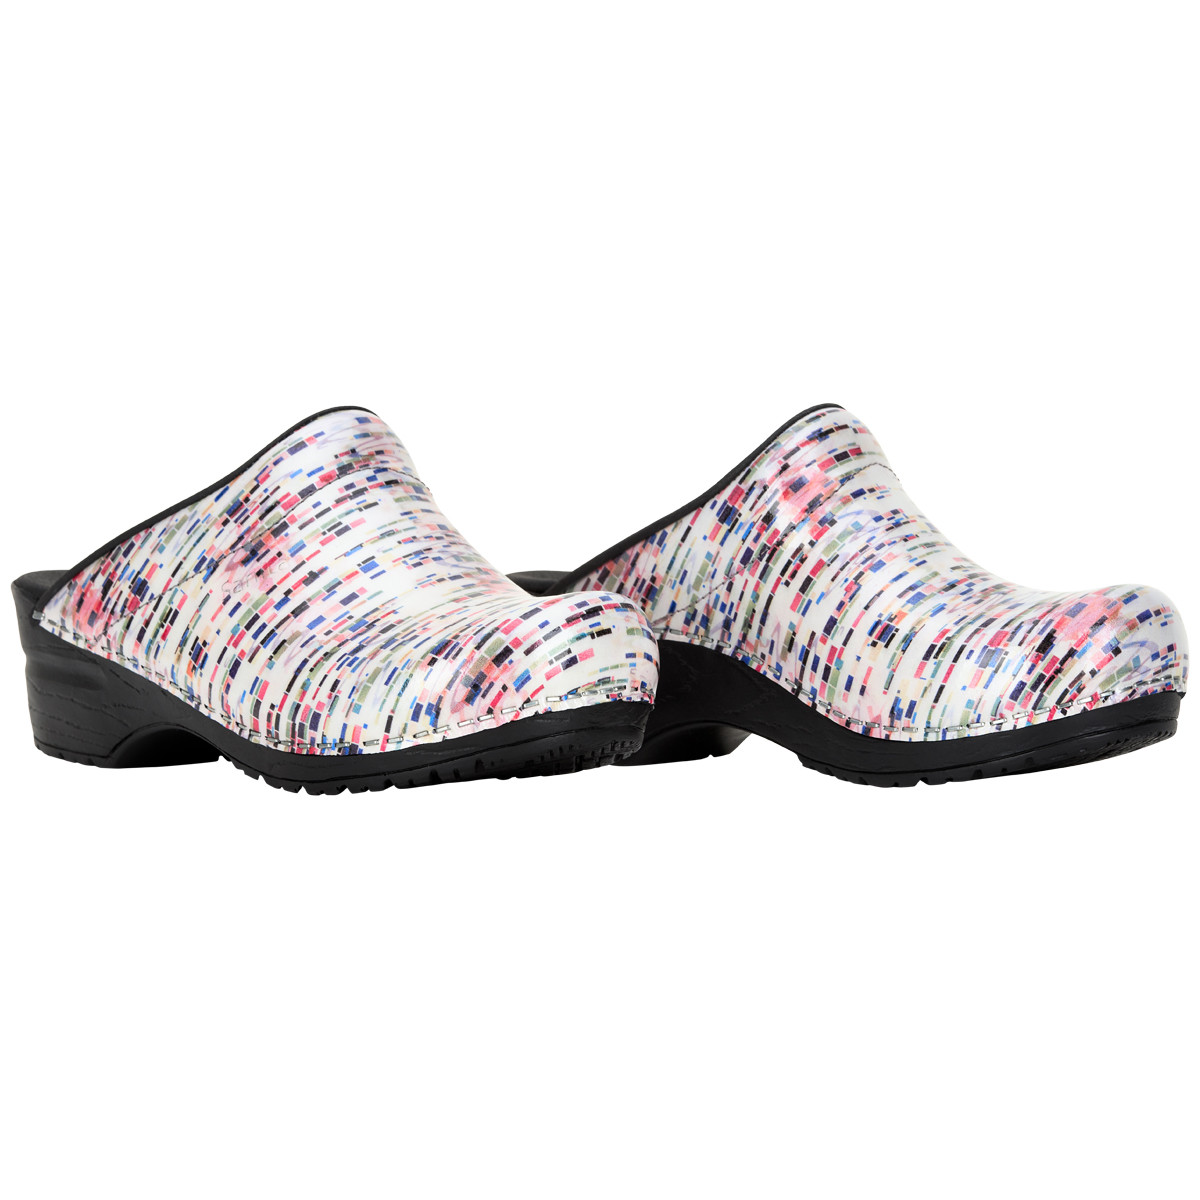 SANITA ORIGINAL CLOGS 471247 65